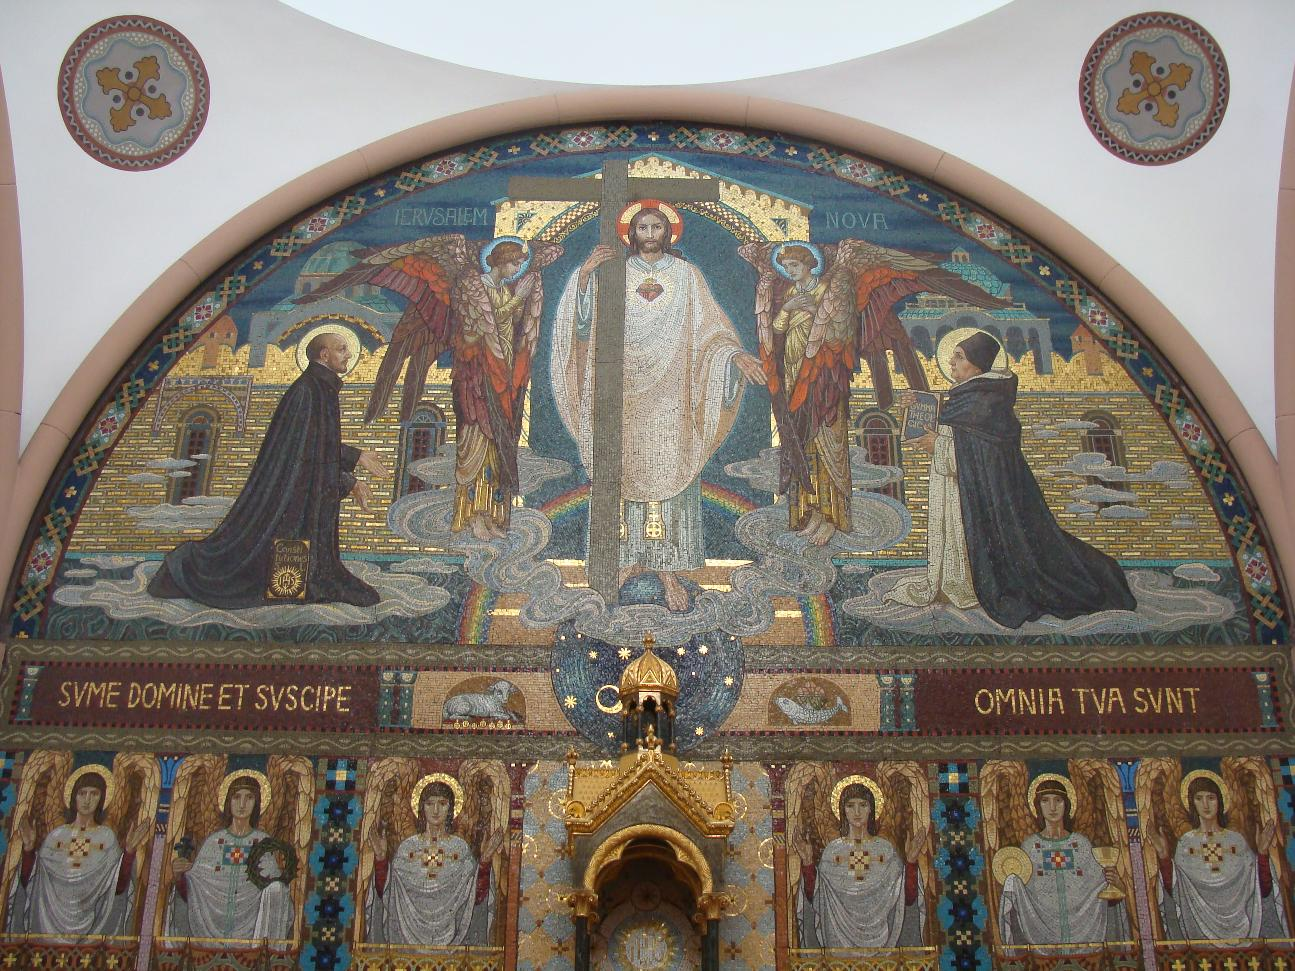 Thomas Aquinas: The City And The World: Notes On The Memorial Of St